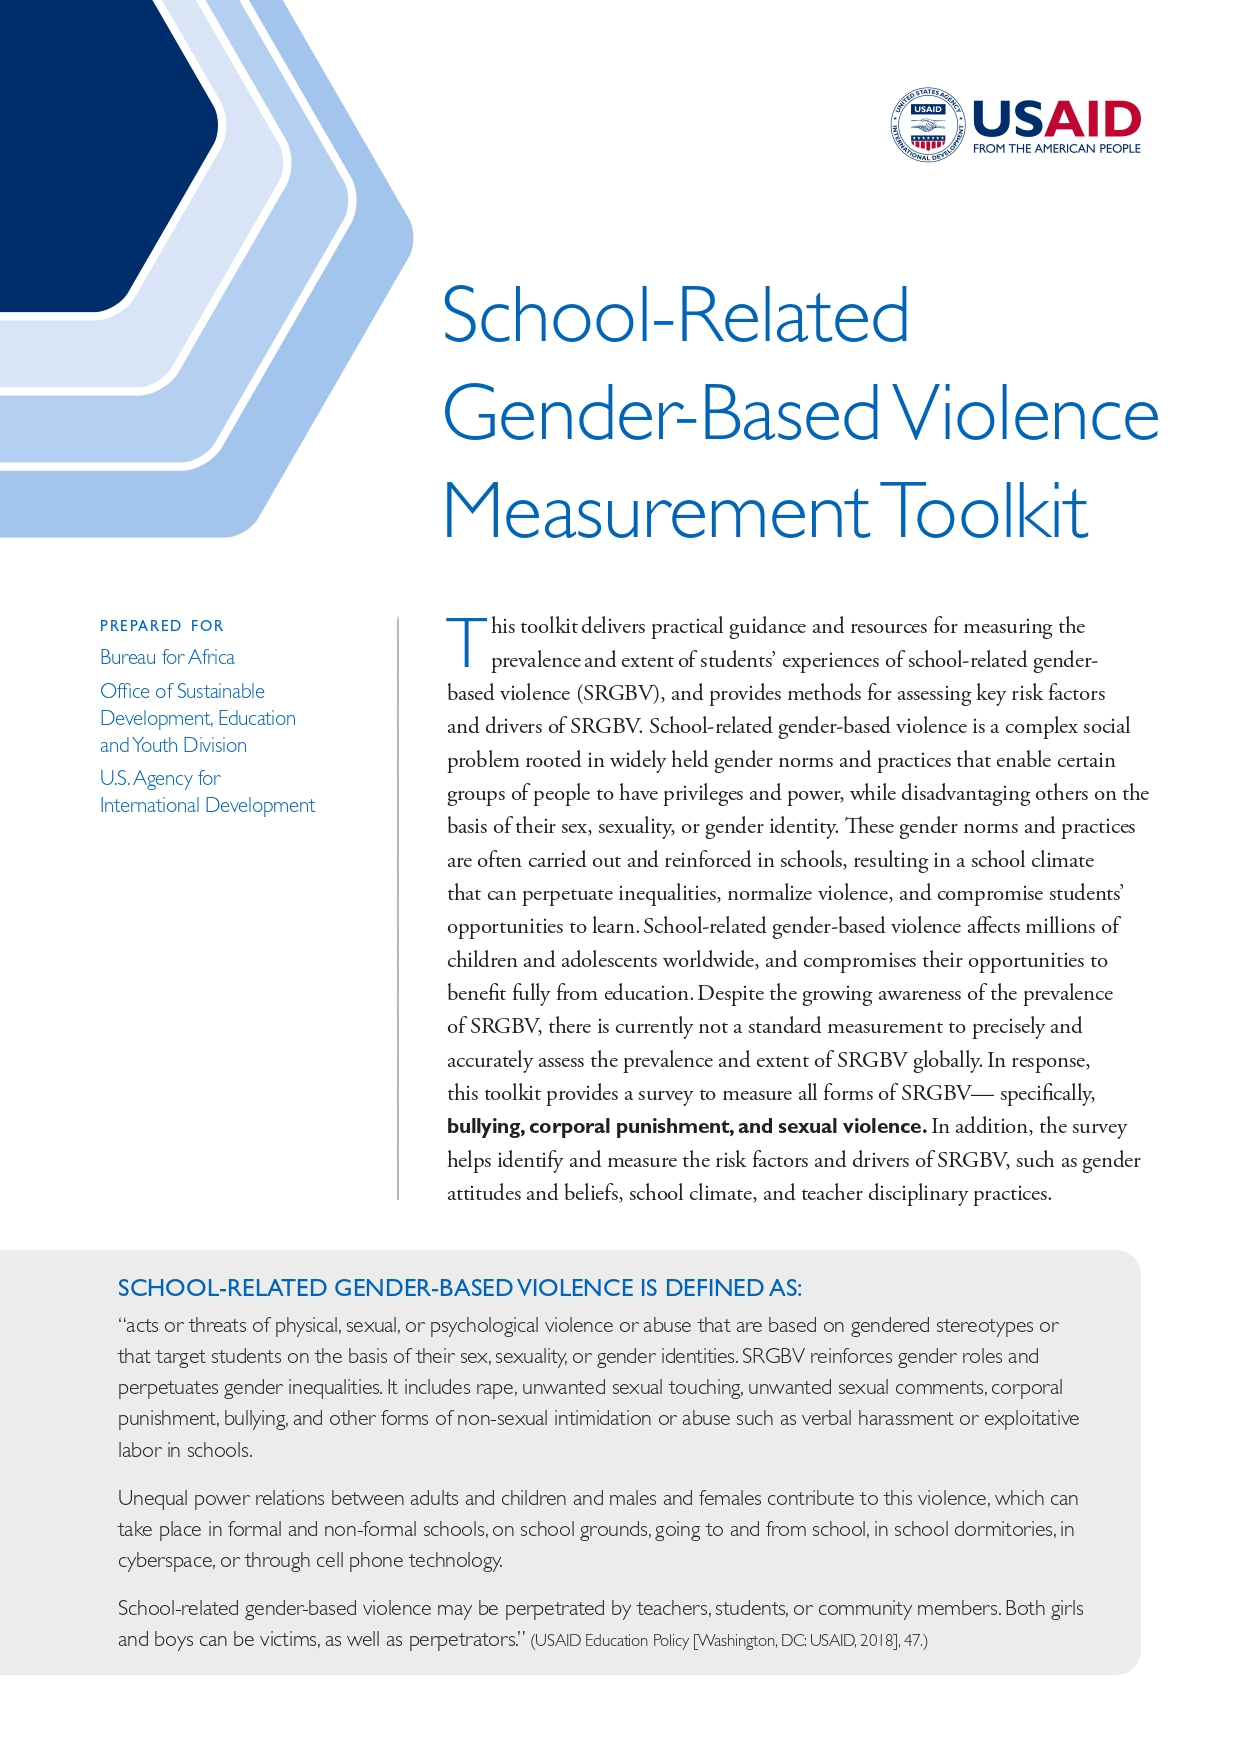 School-Related Gender-Based Violence Measurement Toolkit